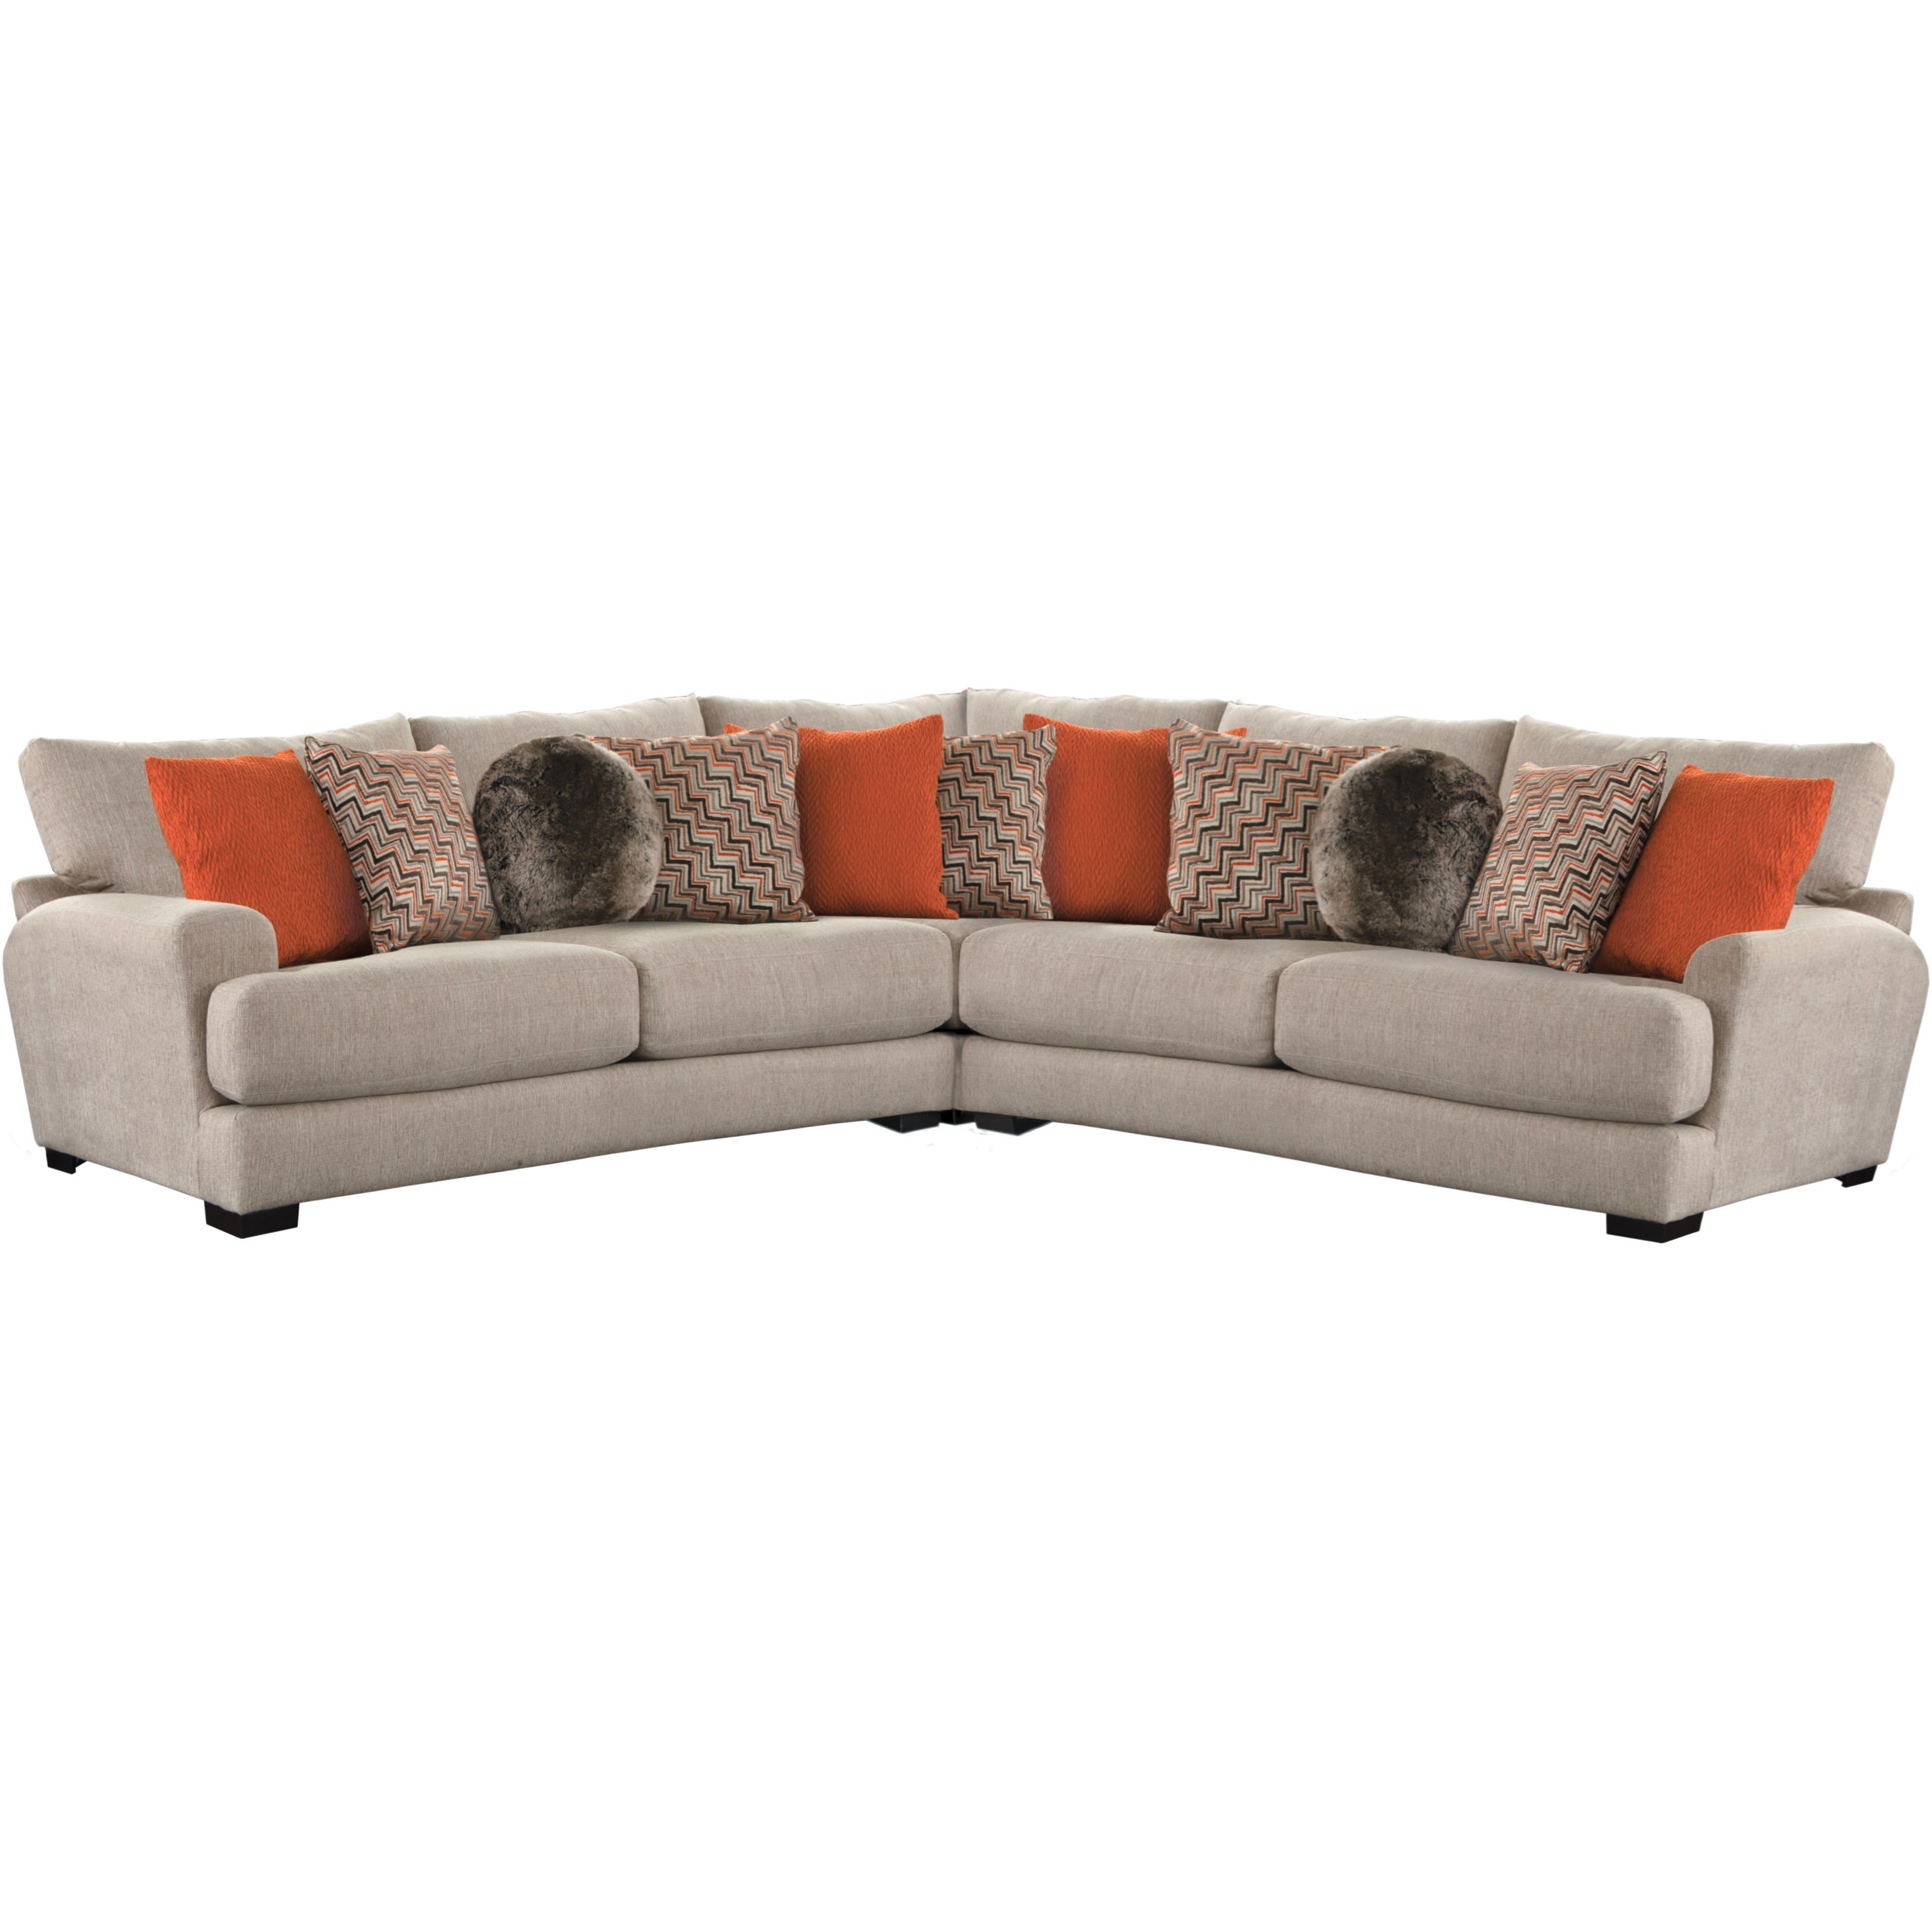 Ava Sectional Sofa with 4 Seats by Jackson Furniture at Zak's Warehouse Clearance Center